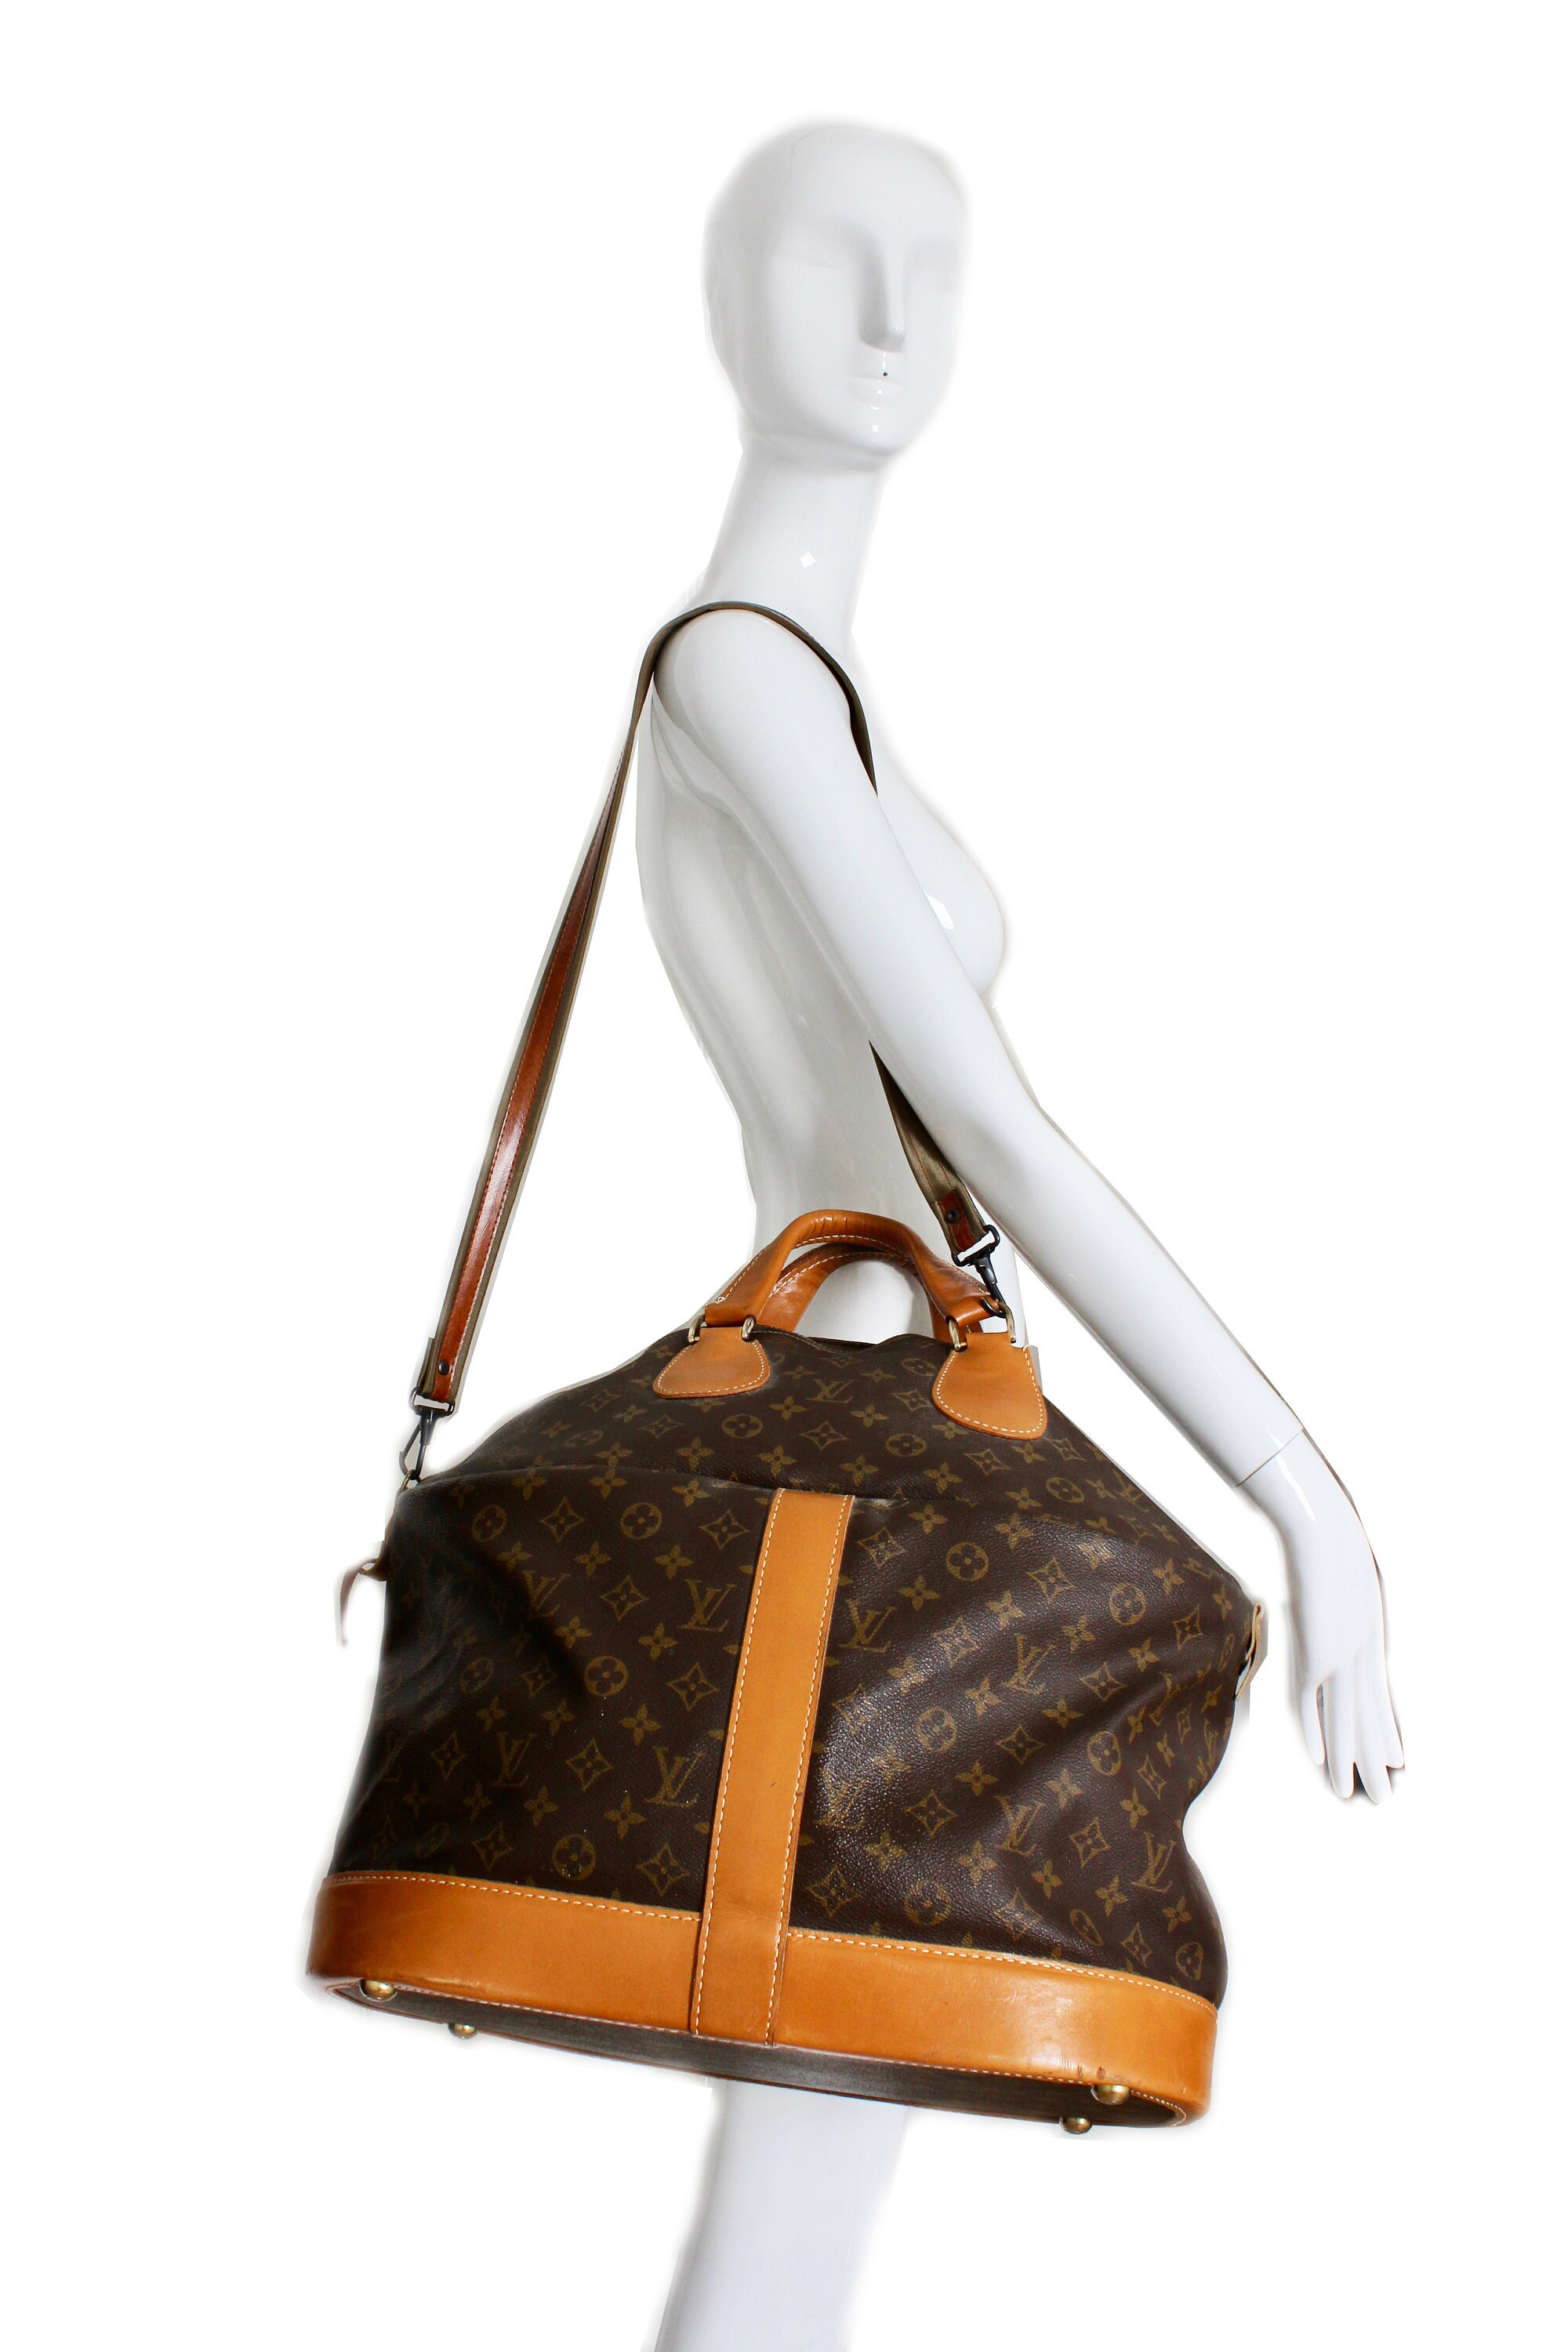 c61a74993641c Rare Louis Vuitton French Co Steamer Bag Monogram Travel Tote